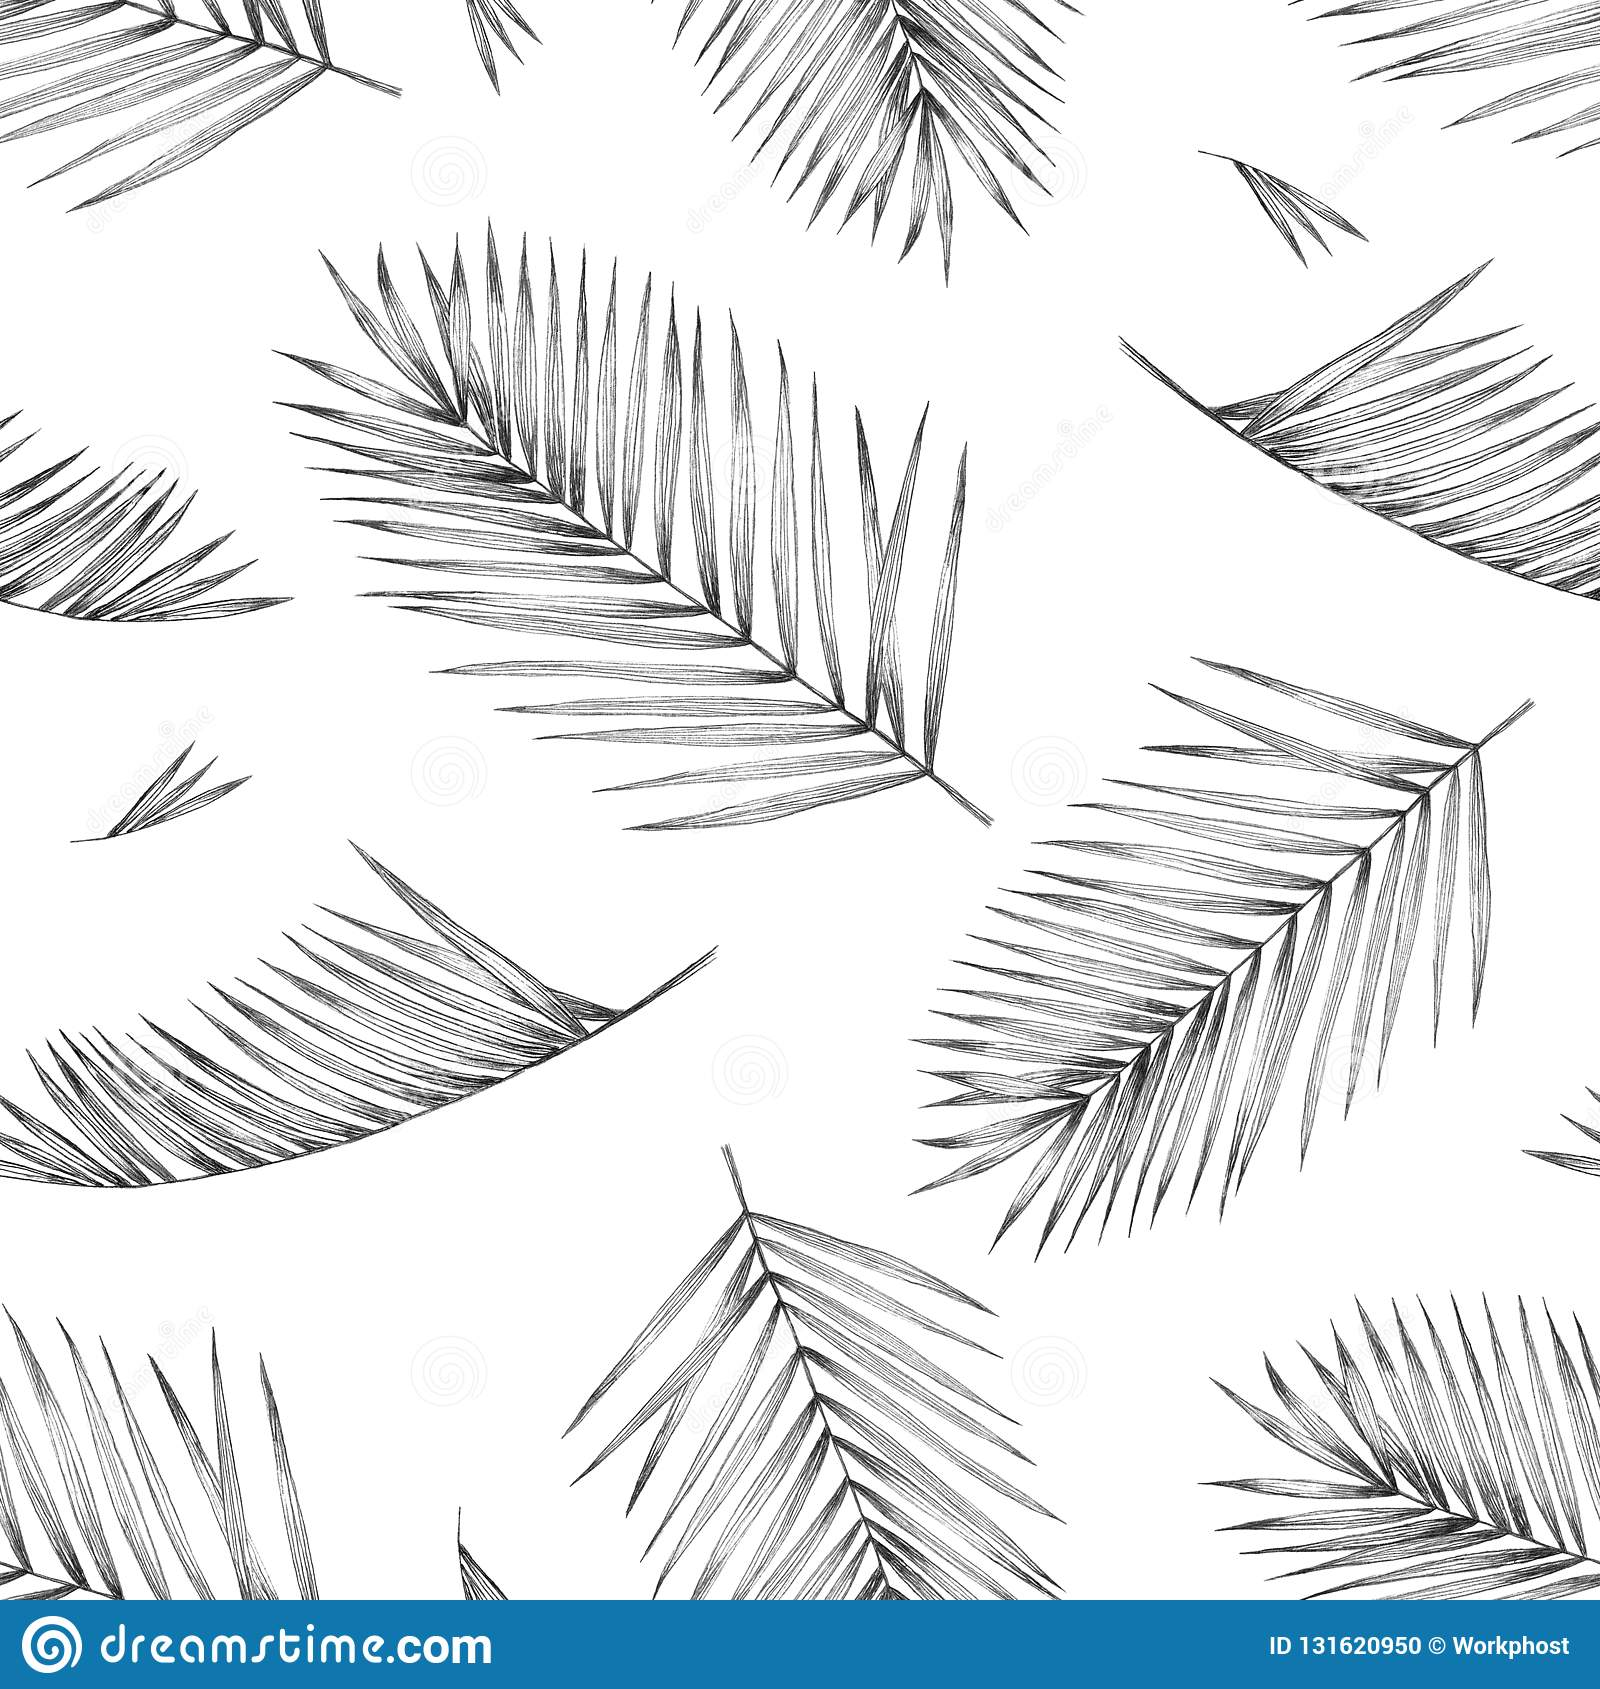 Seamless pattern with tropical palm leaves on white background. Design for textiles and fabrics. Hand pencil drawing